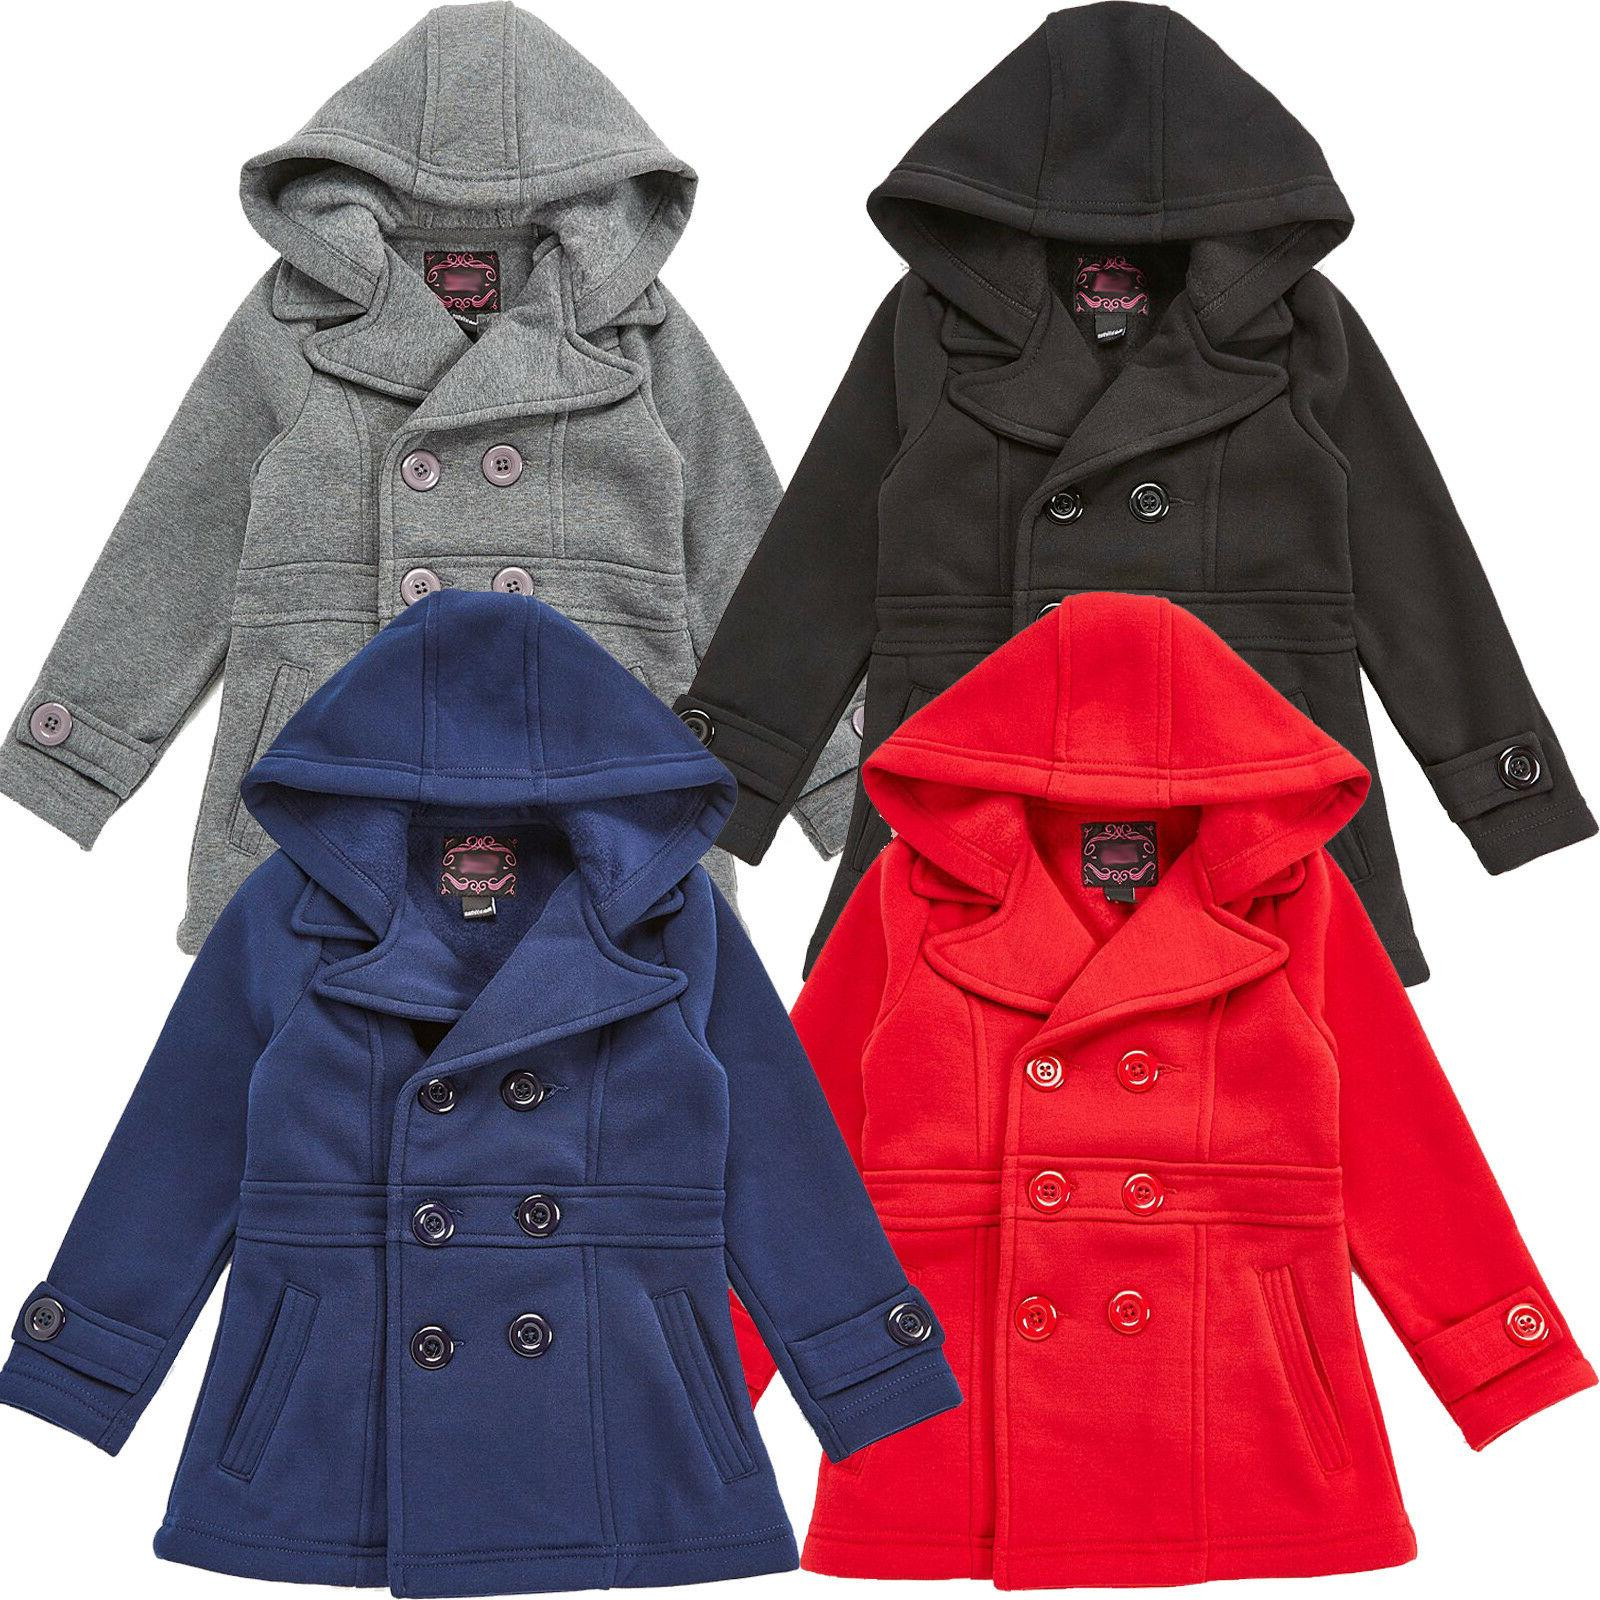 Girls Pea Coat, Dress Coat with Hood Red, Navy Blue,Gray, Bl